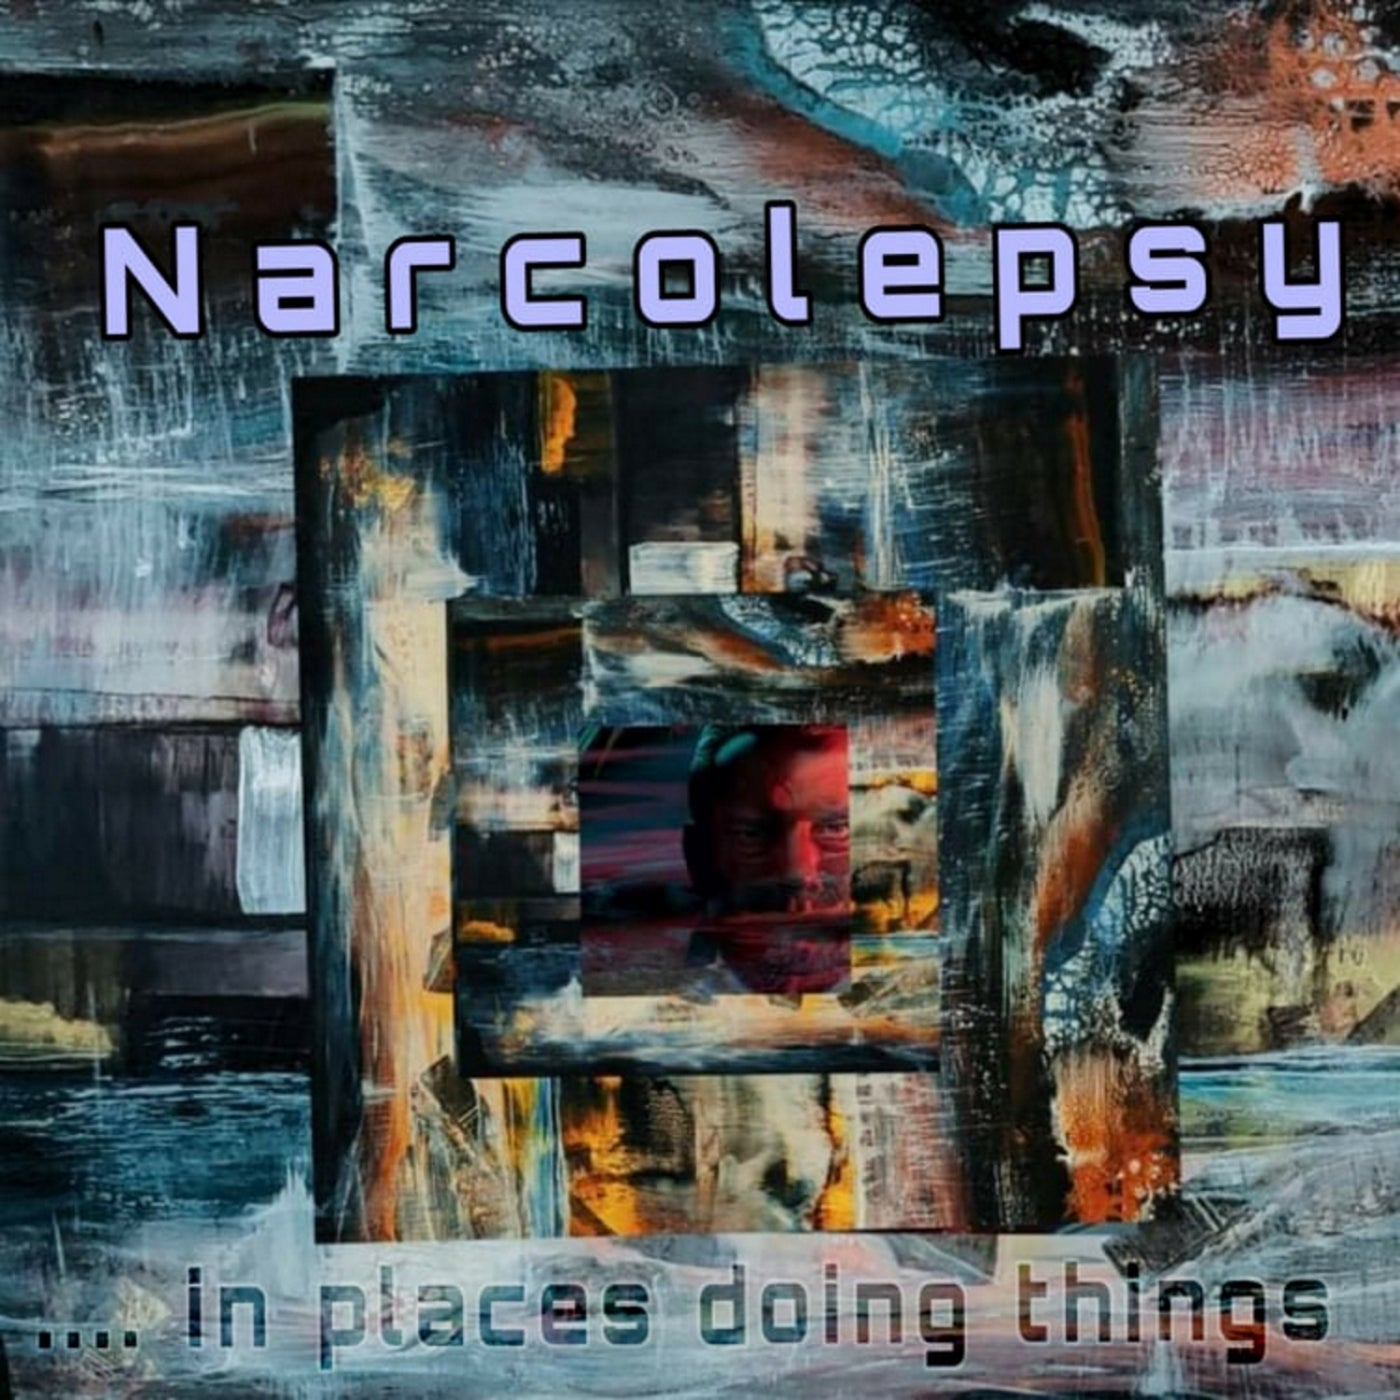 Narcolepsy & Spoon Bender, Narcolepsy - In Places Doing Things (2021)